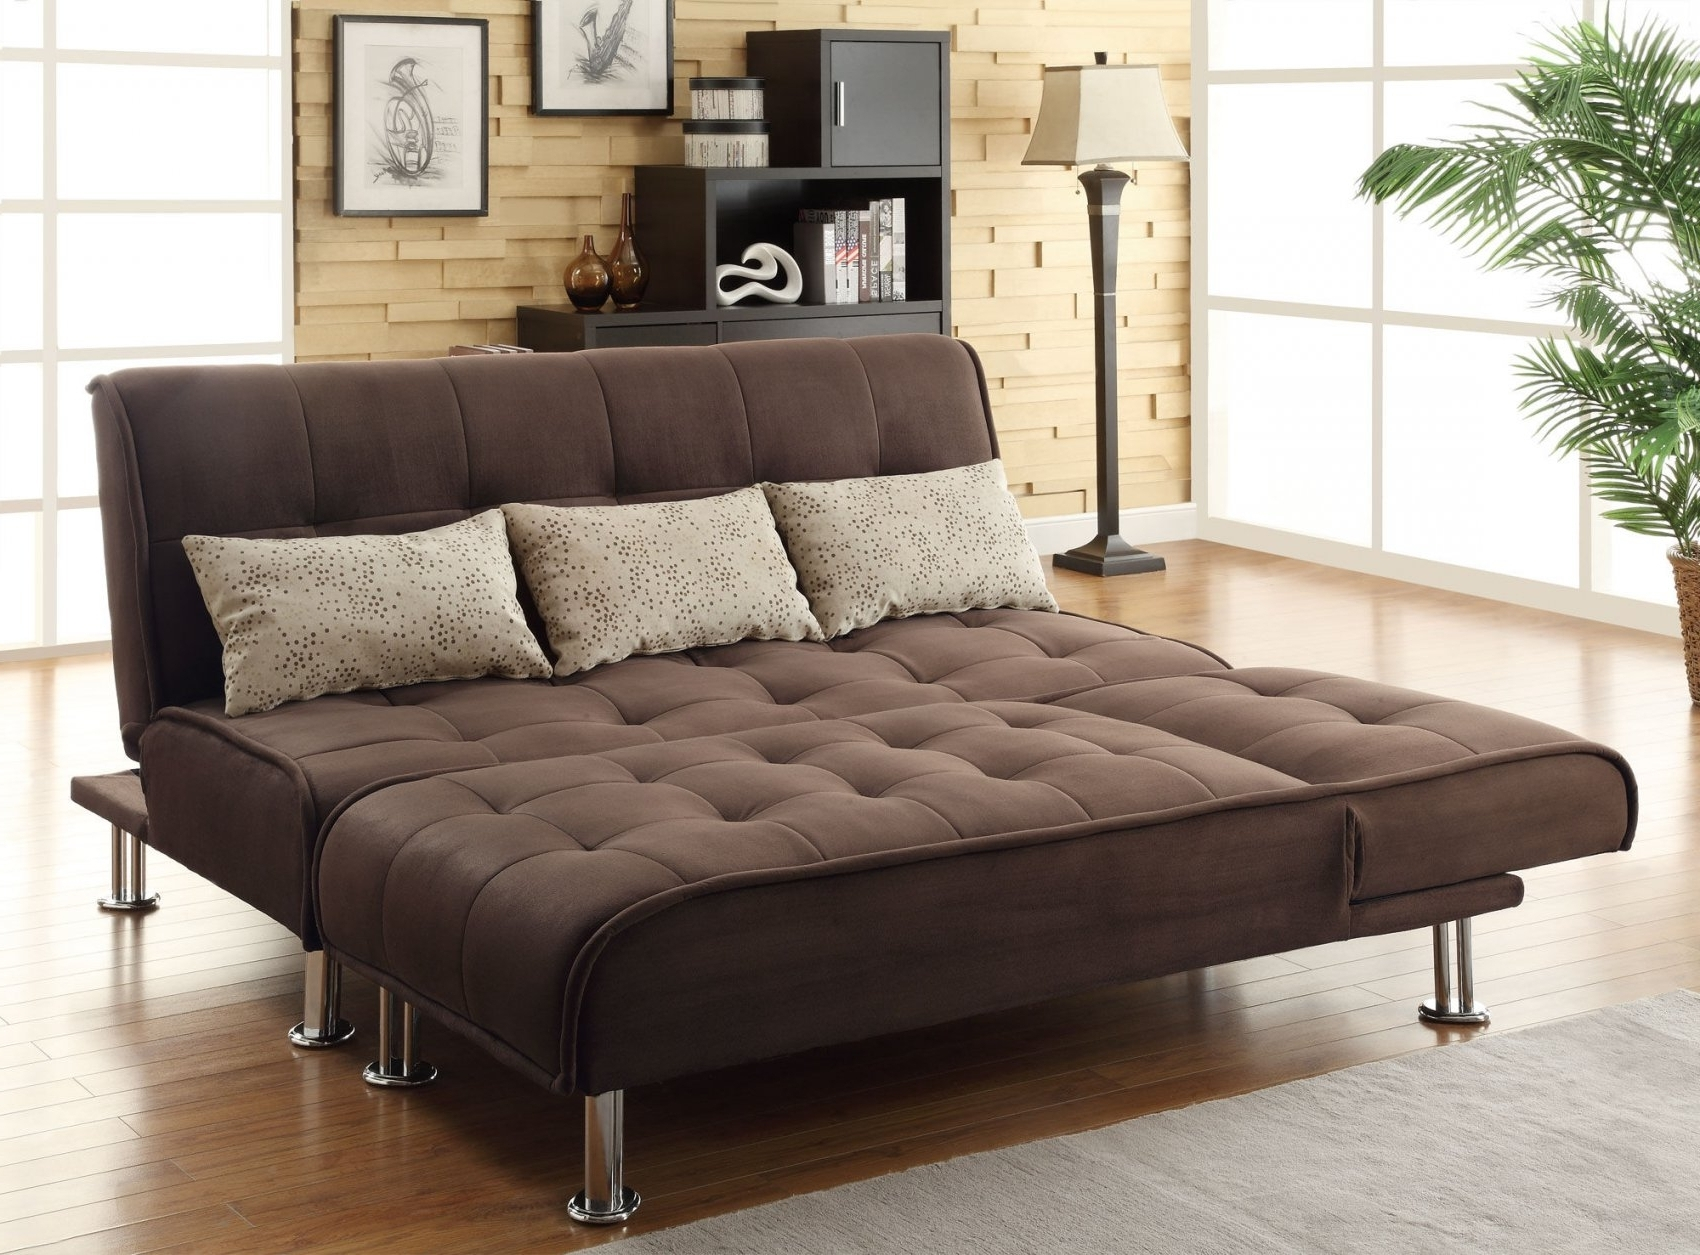 Queen Size Sofas With Most Popular Queen Size Convertible Sofa Bed 46 About Remodel Pepperfry (View 16 of 20)